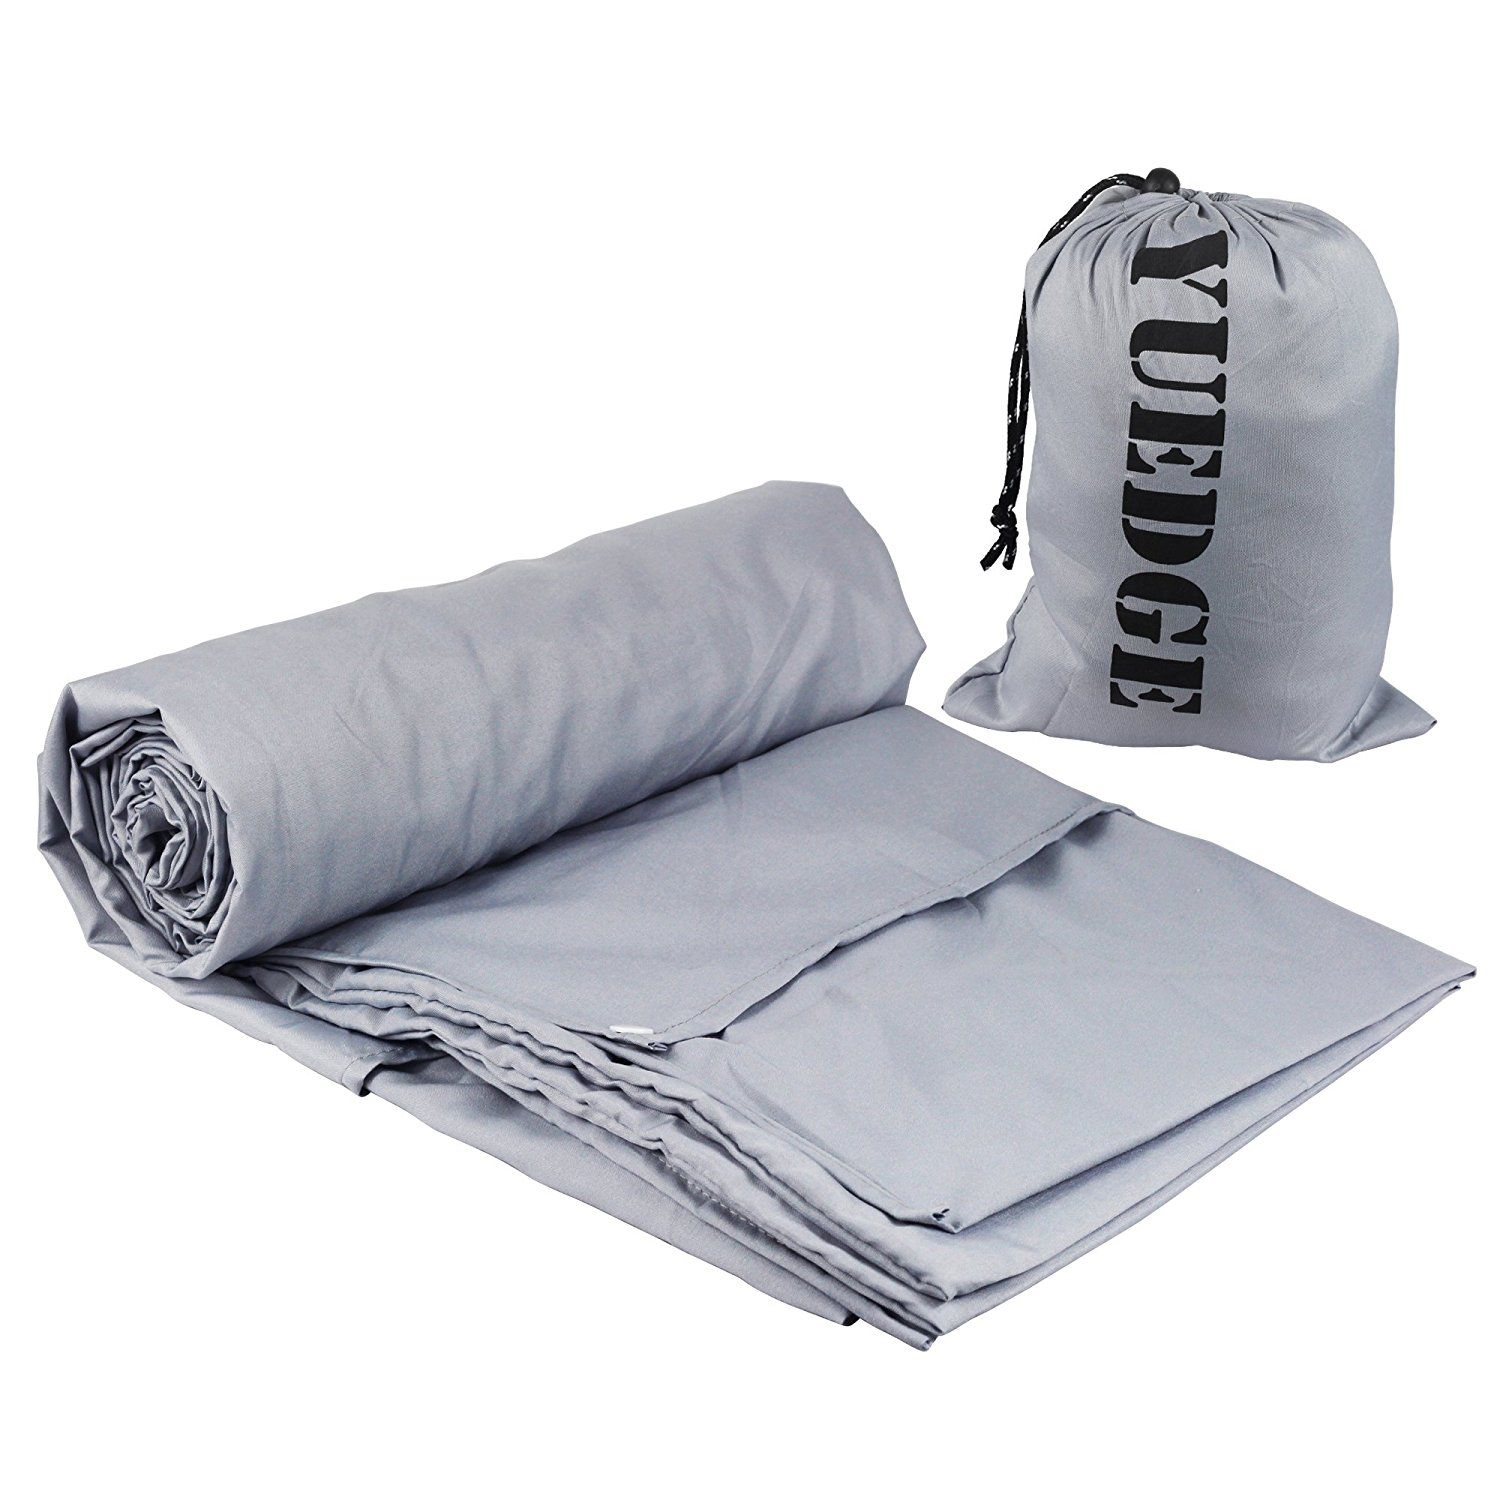 YUEDGE Travel And Camping Sheet Sleeping bag Liner pact Sleep